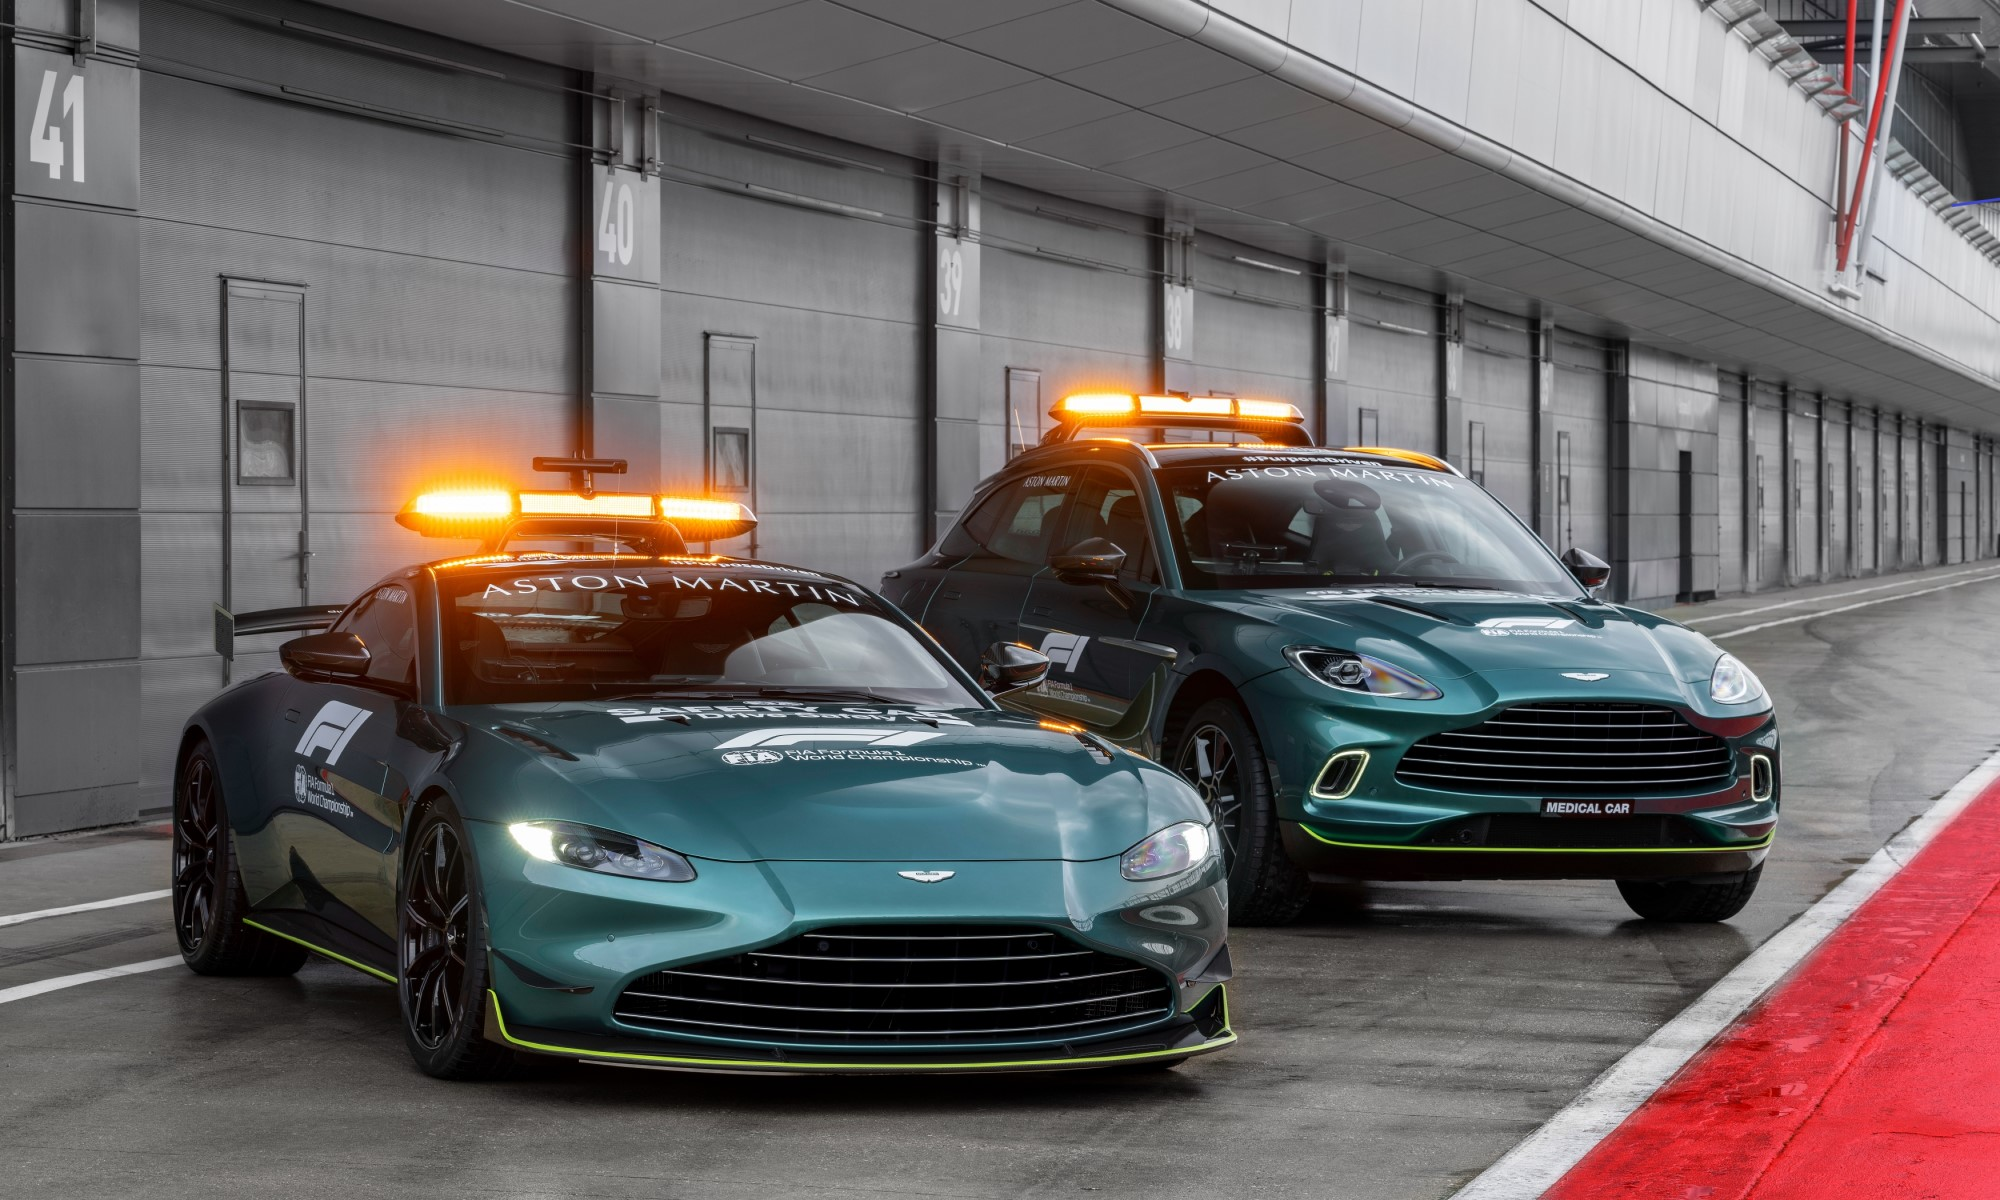 Aston Martin F1 Safety Car and Medical Car